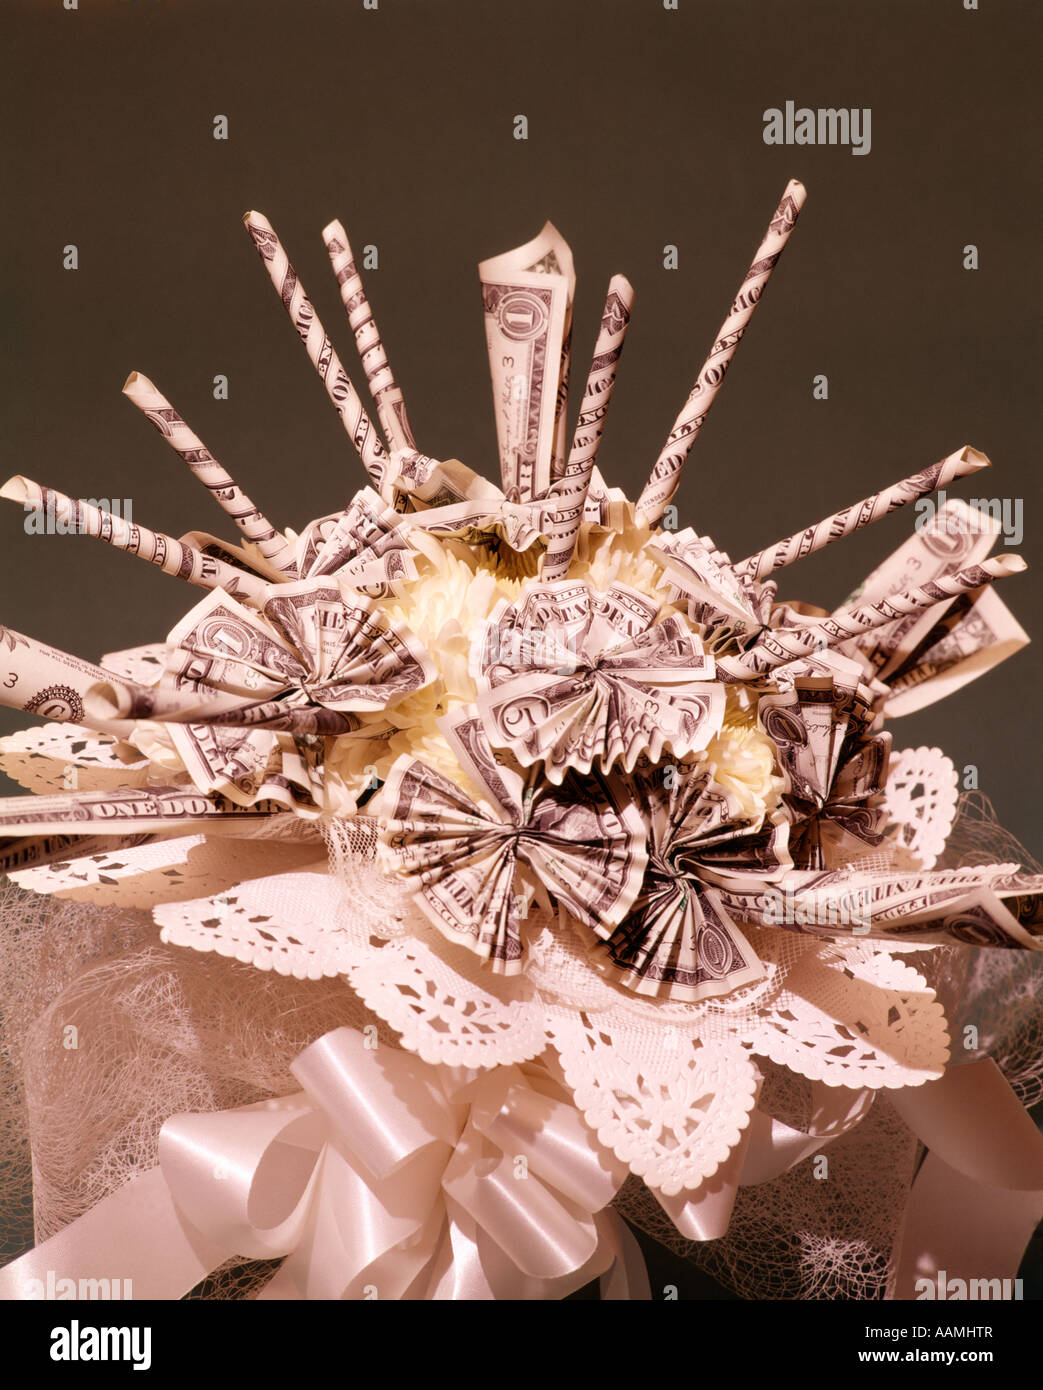 Customary Wedding Gift Dollar Amount : Photo - BRIDAL BOUQUET MADE UP OF MONEY MARRIAGE FINANCES WEDDING GIFT ...